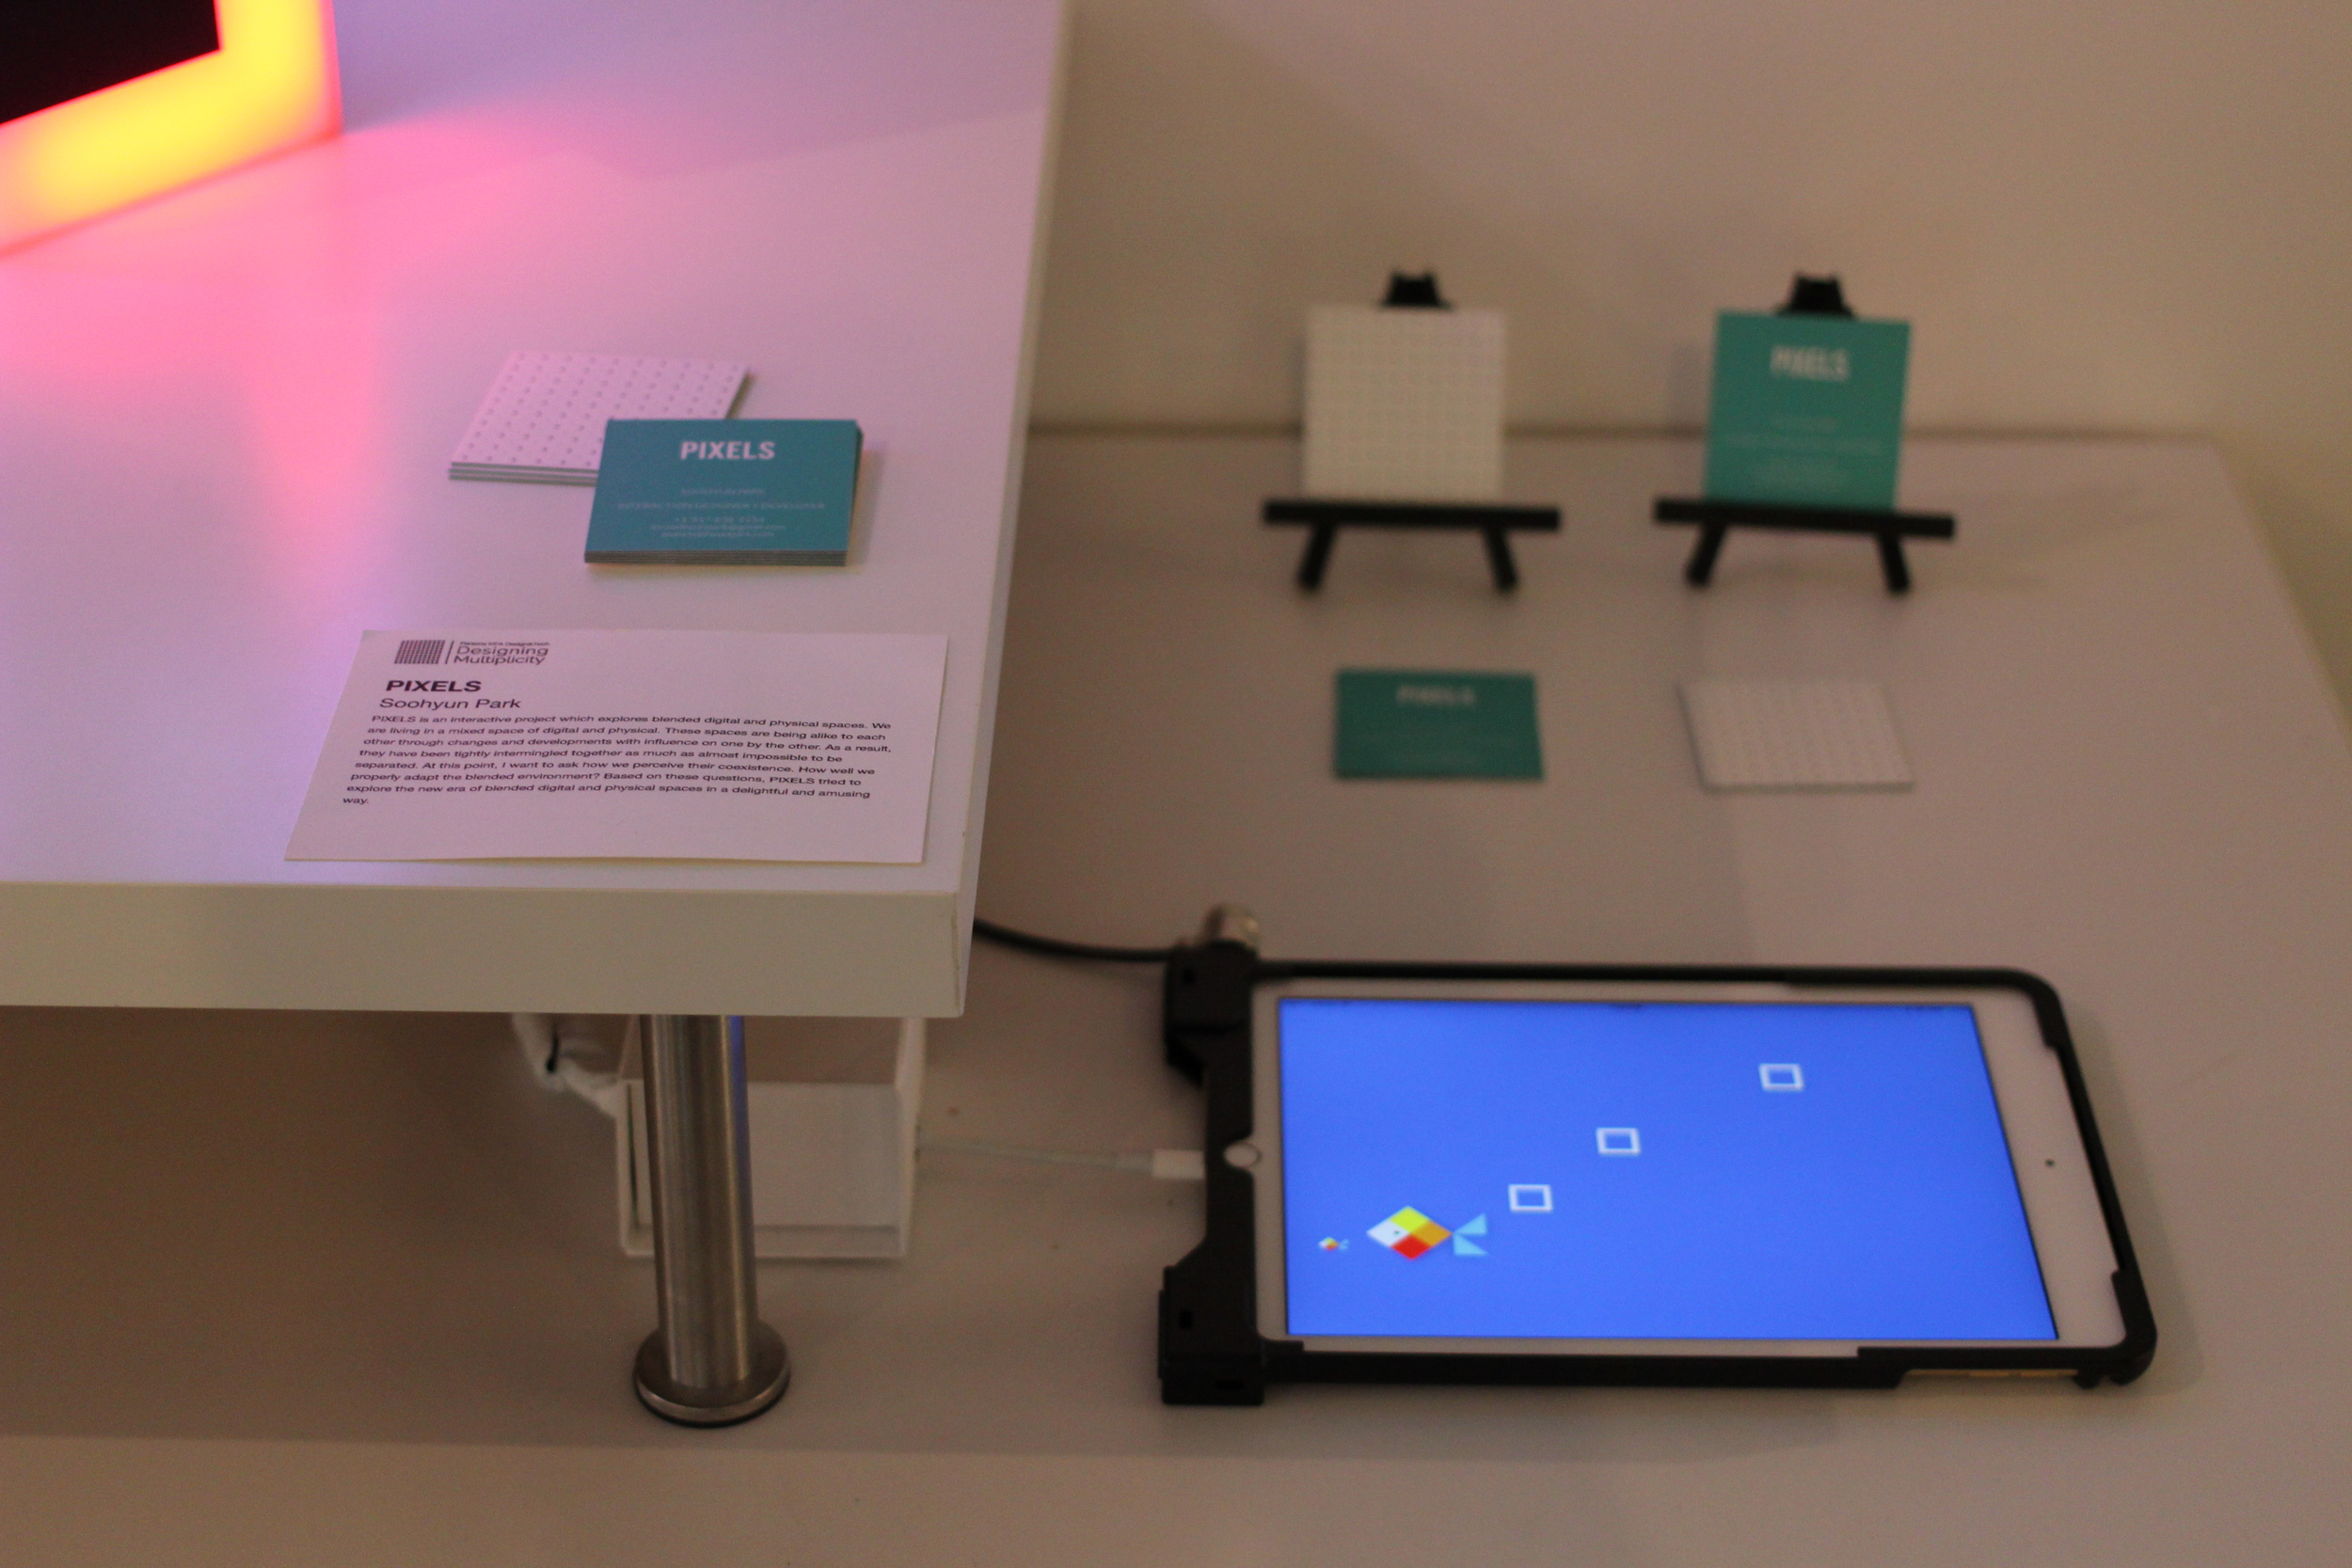 """Users can  connect to up to 4 PIXELS objects  with the app """"PIXELS"""" and see multiple square box appears on the screen. Each one box correlates to specific connected object and show the same color of pixel.  UX Example 01 : (single user)play with dragging boxes on the screen to catch the fishes. challenging to change the color of light object as much as they can.   UX Example 02: (multiple  u  ser)  a person drags the boxes on the screen and place the boxes in certain order or shape. the other person challenges to find out which PIXELS object connected to which white box on the screen and place the object in a same order of shape that the other made."""